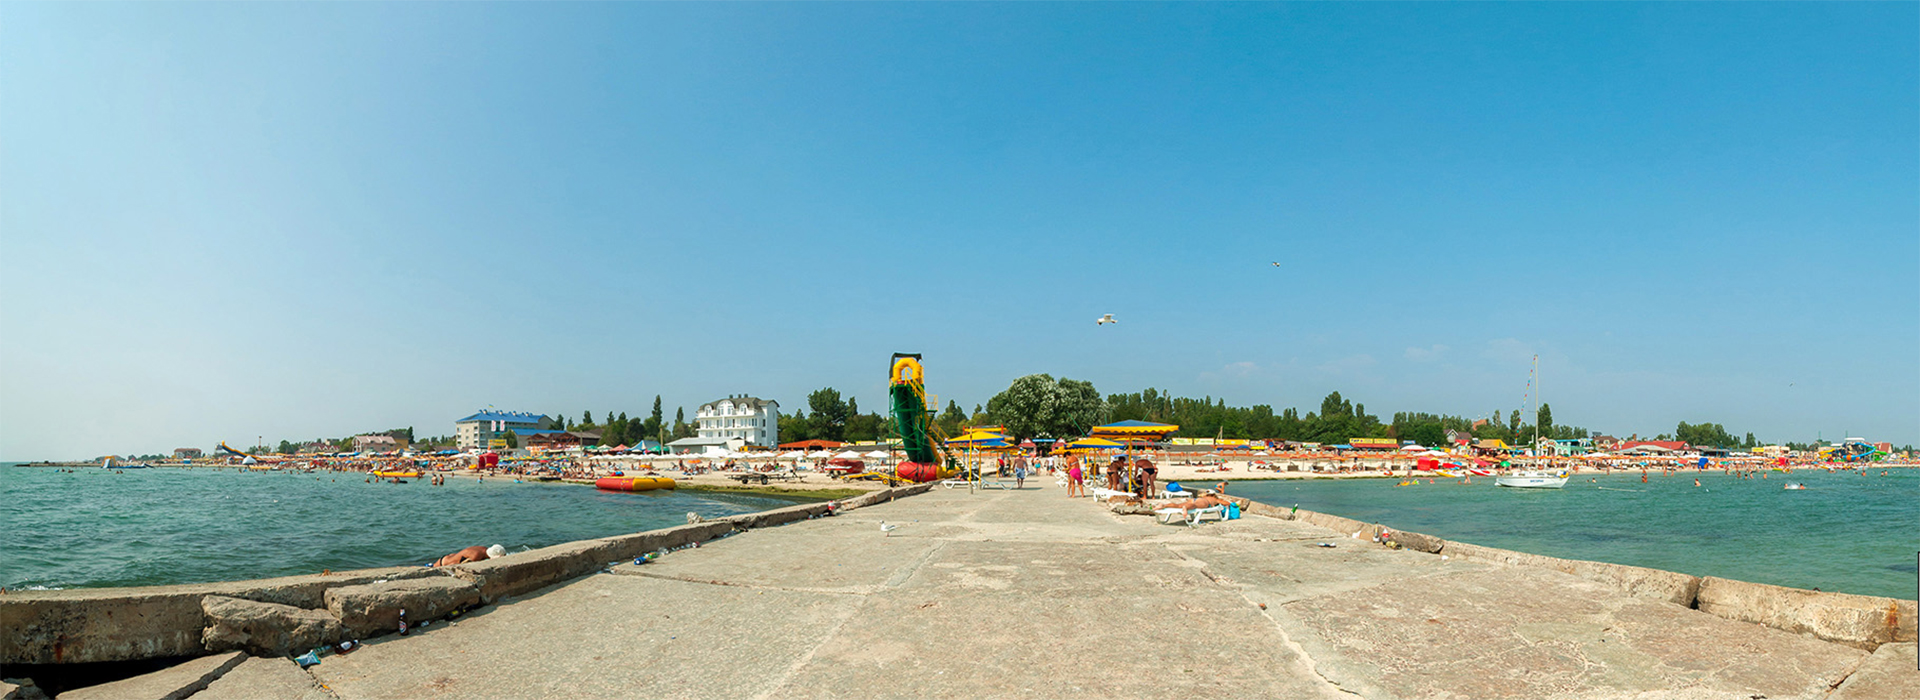 jelezniy_port_Dv-tour